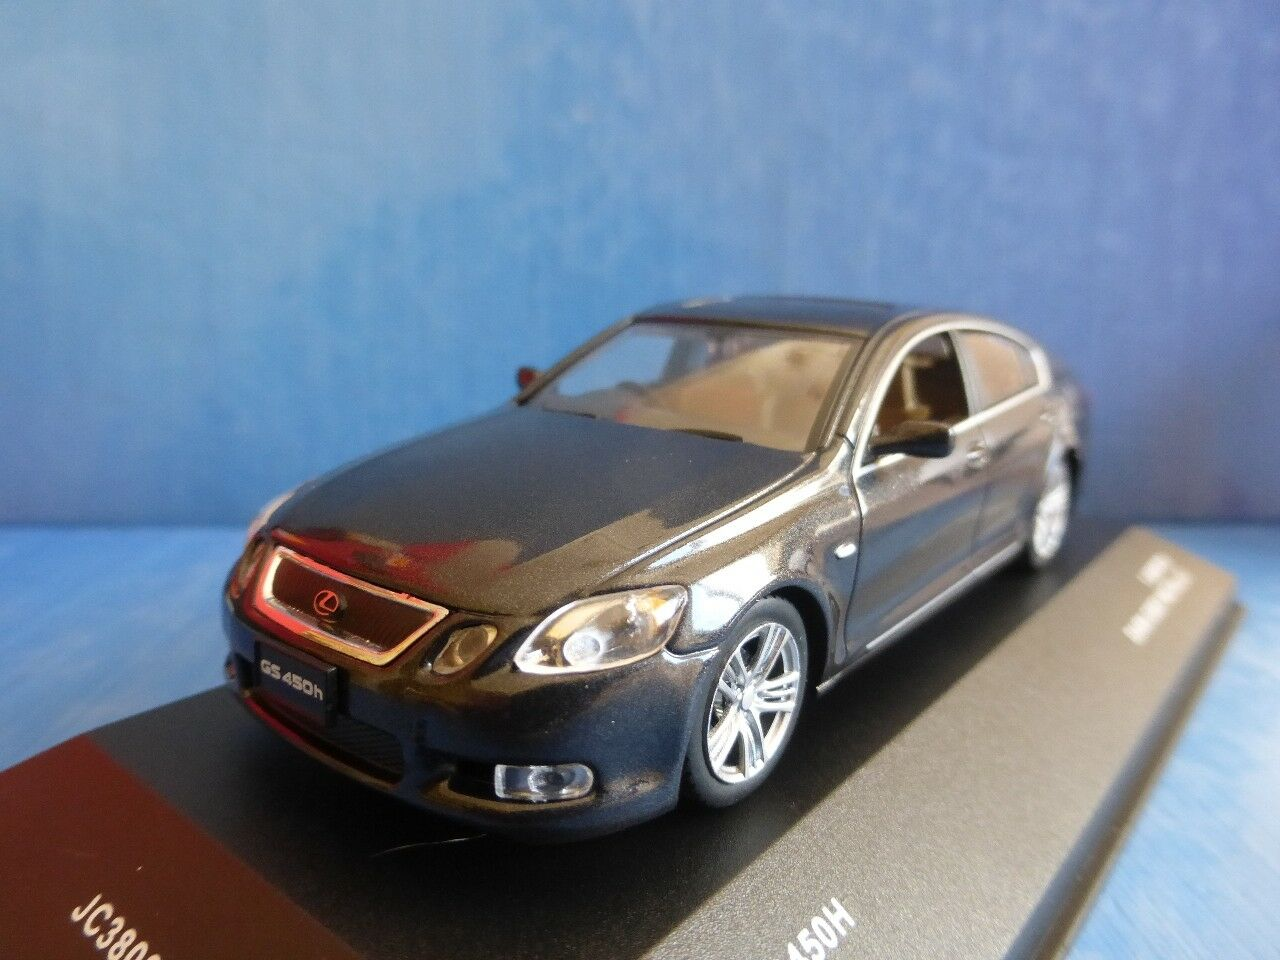 LEXUS GS450H 2006 2006 2006 DARK GREY METAL JCOLLECTION JC38002HD 1 43 LIMITED EDITION RHD d75aca